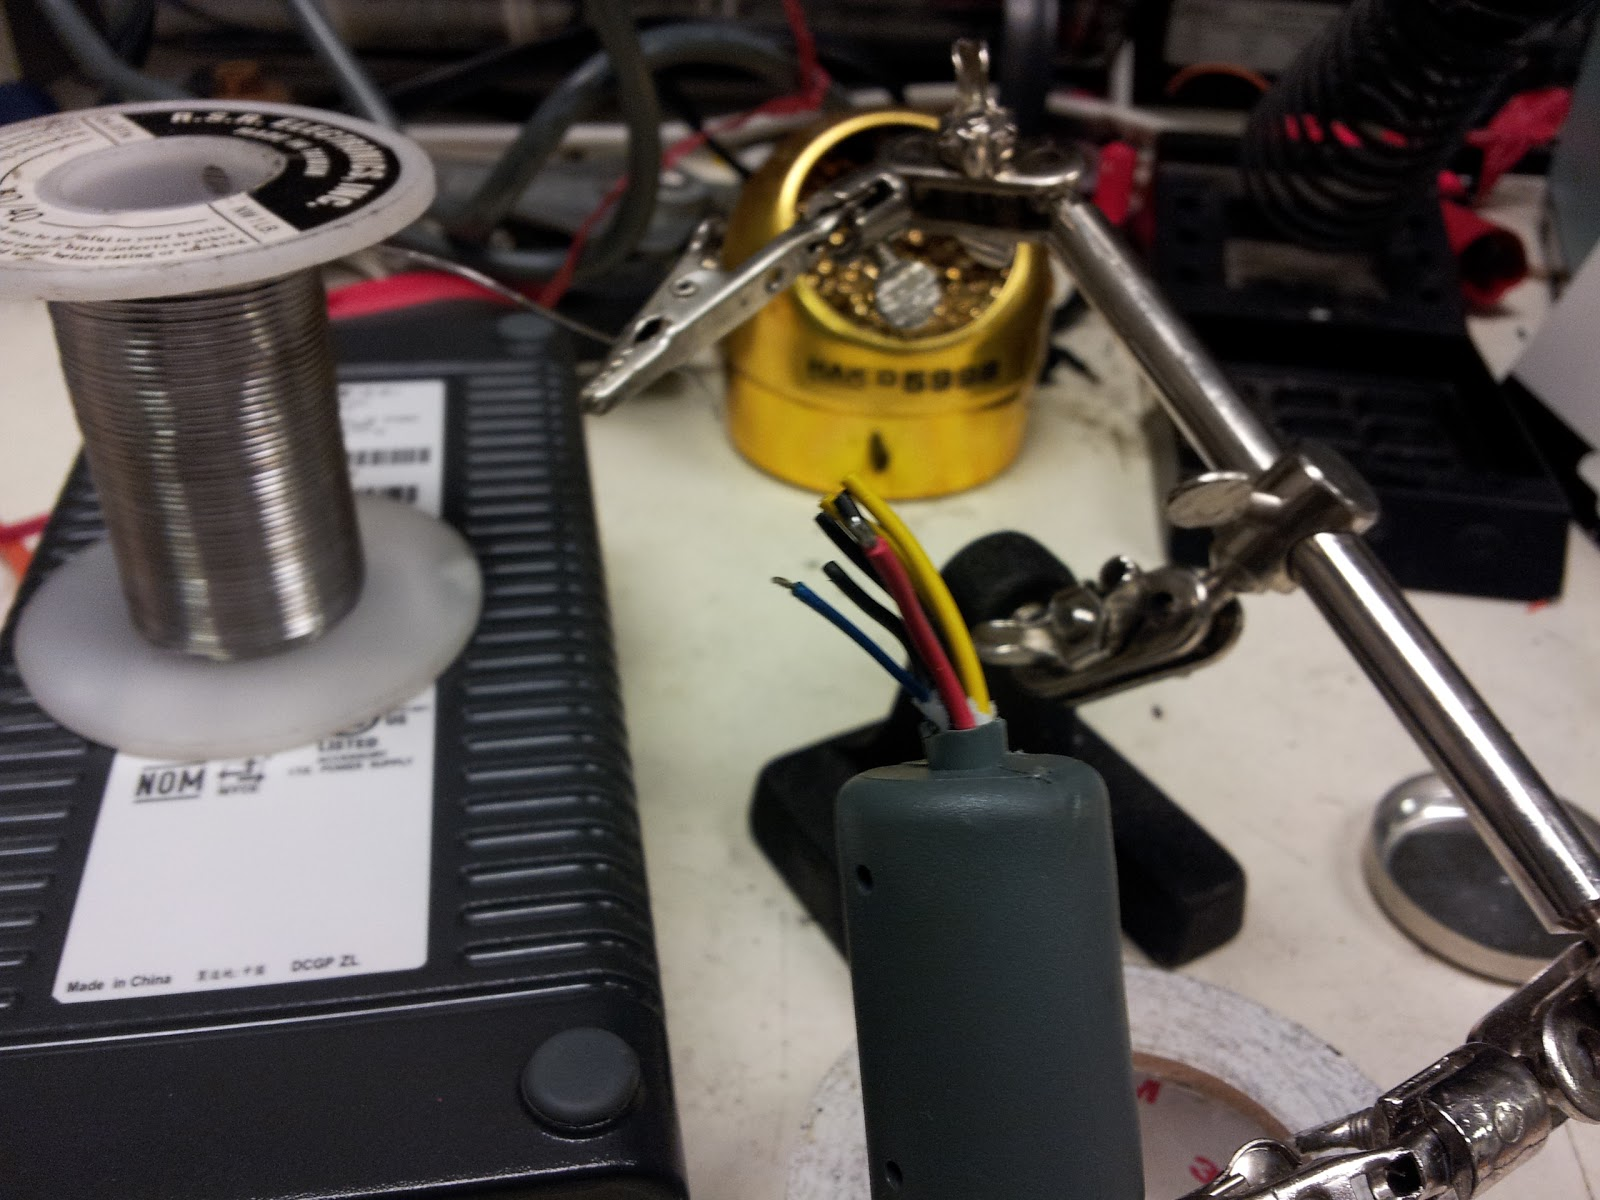 hight resolution of  20121104 030227 c the variable constant xbox 360 power supply hack xbox 360 slim power supply wiring